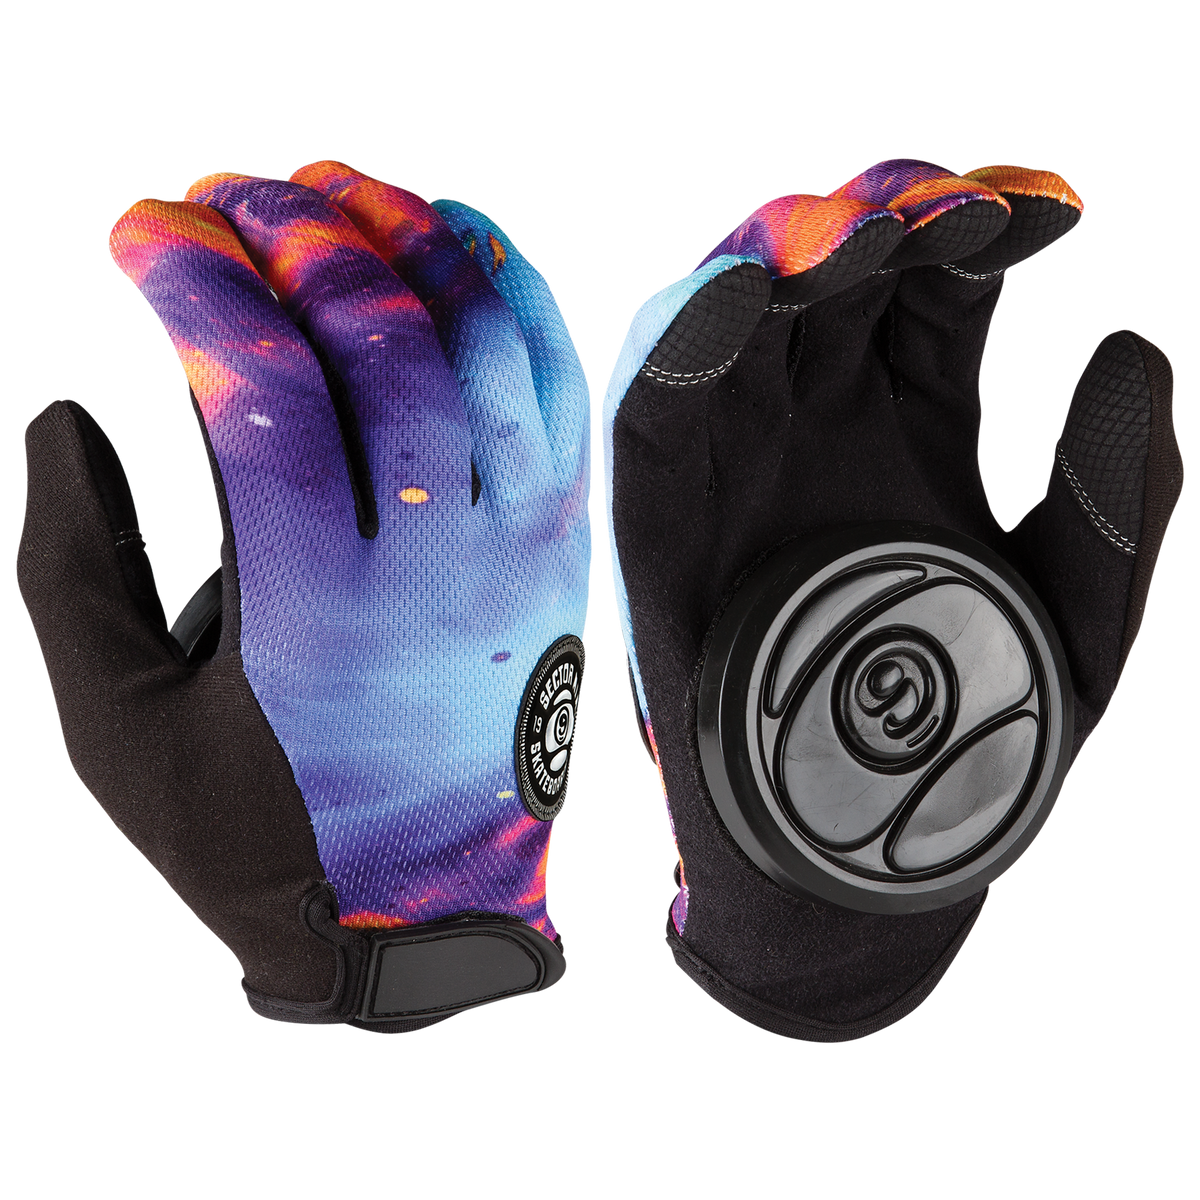 RUSH SLIDE GLOVES - COSMOS